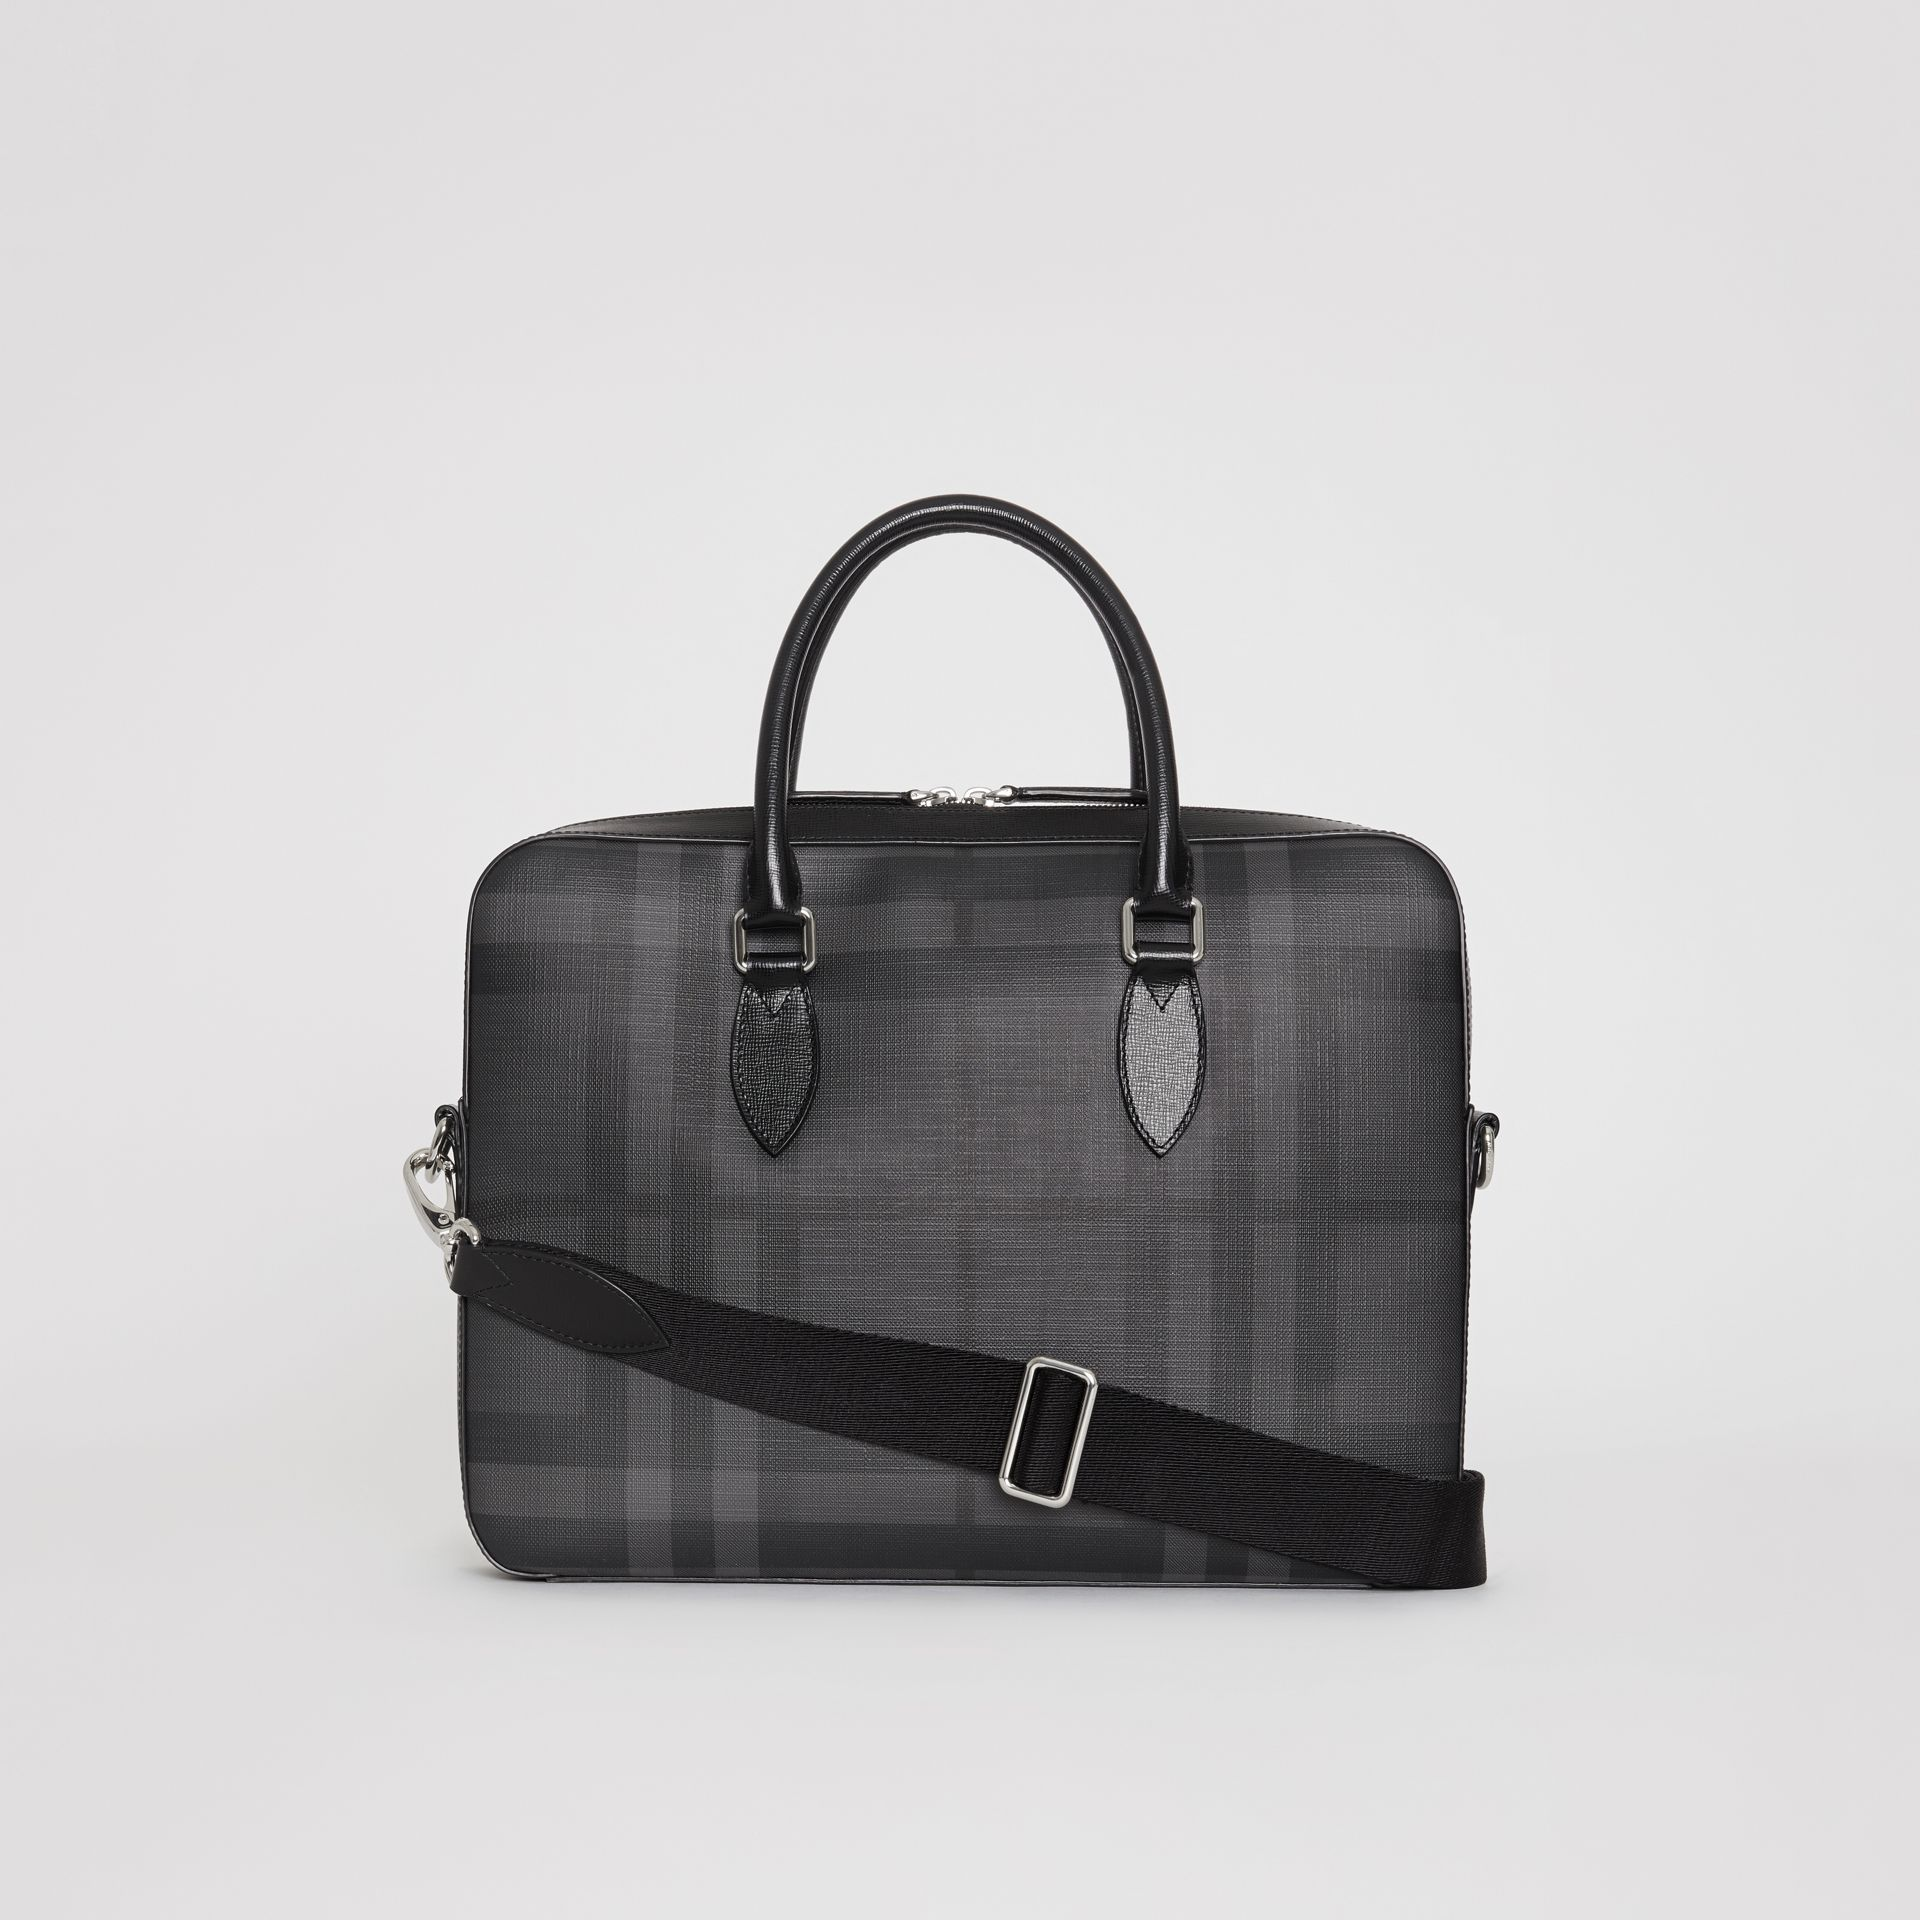 Sac The Barrow fin avec motif London check (Anthracite/noir) - Homme | Burberry - photo de la galerie 7